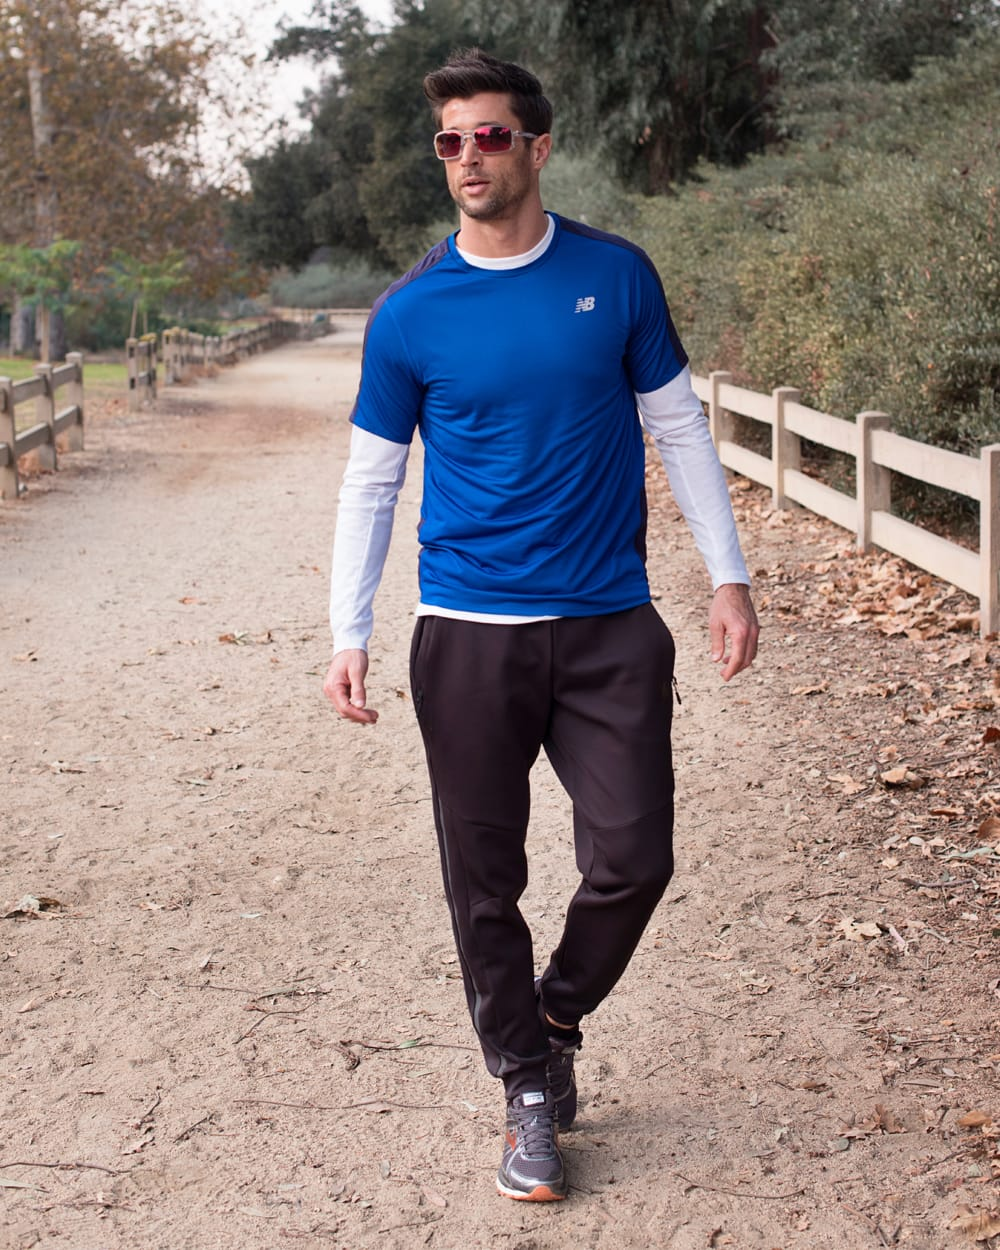 A 3/11 - Shop Men's Running Styles